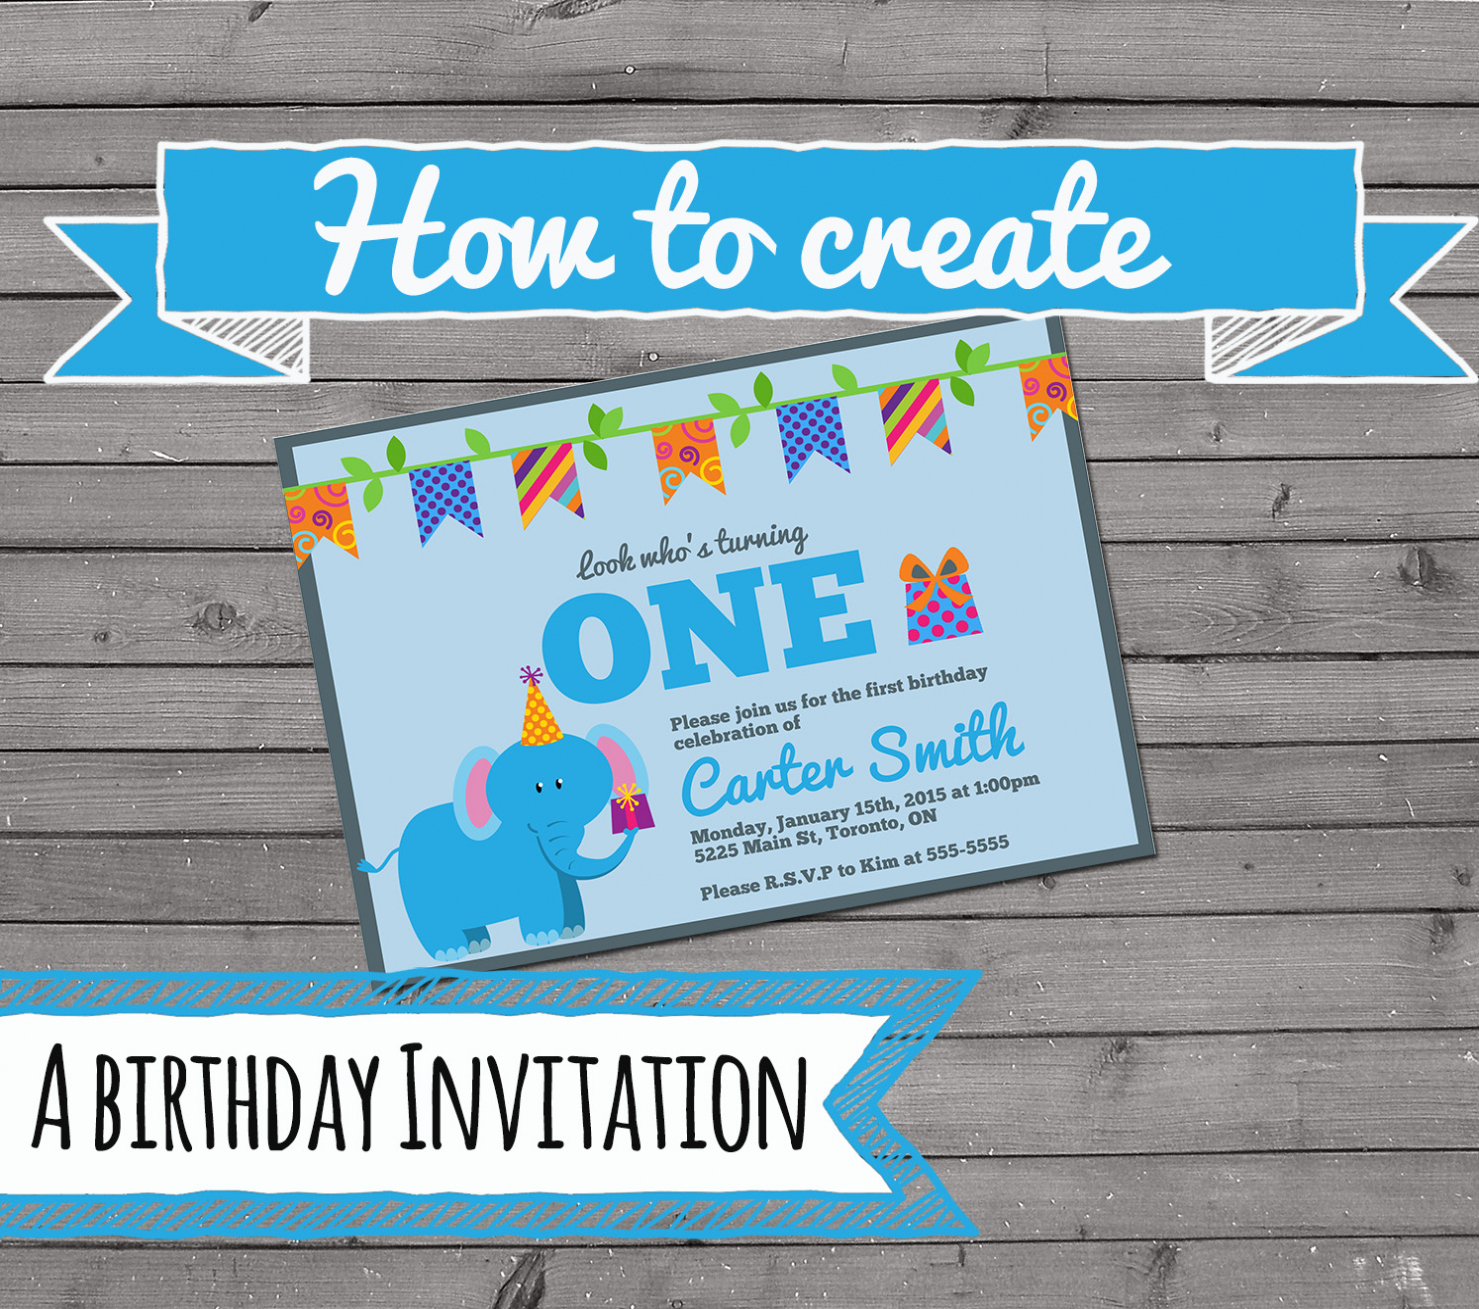 design your own birthday invitation cards free ; design-your-own-birthday-invitations-design-your-own-birthday-design-your-own-birthday-invitation-1